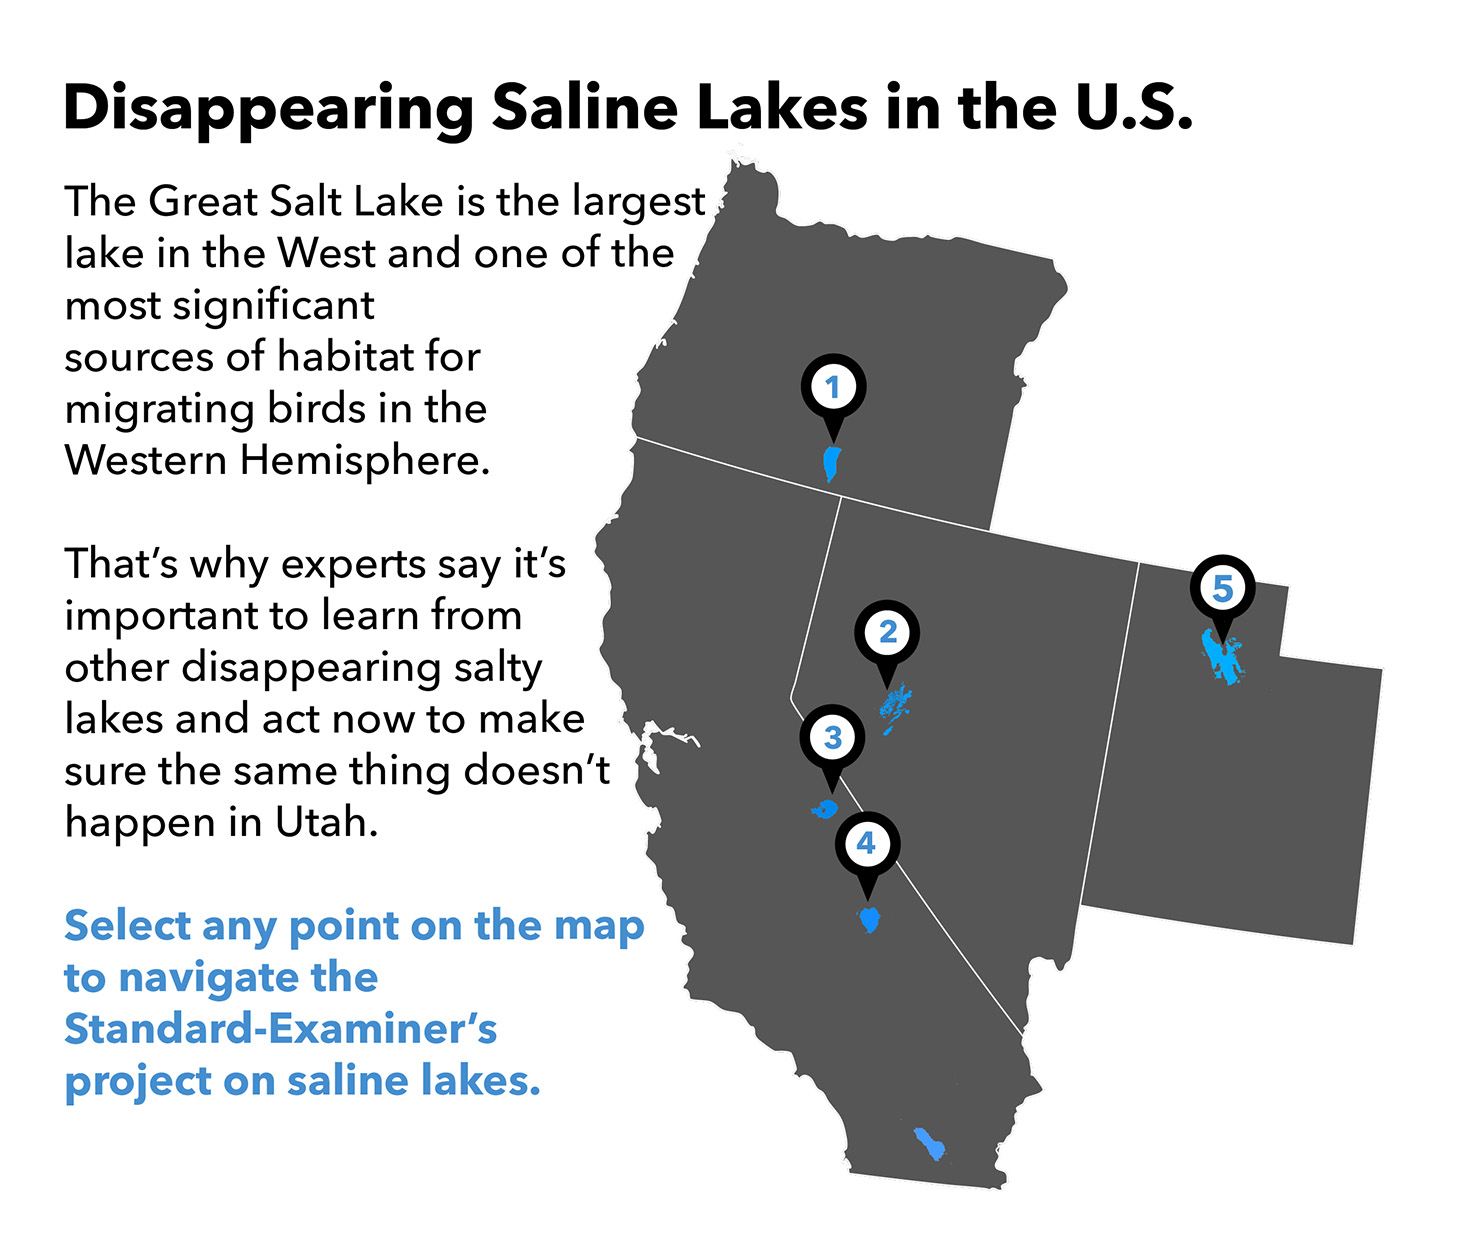 Disappearing Saline Lakes in the U.S.